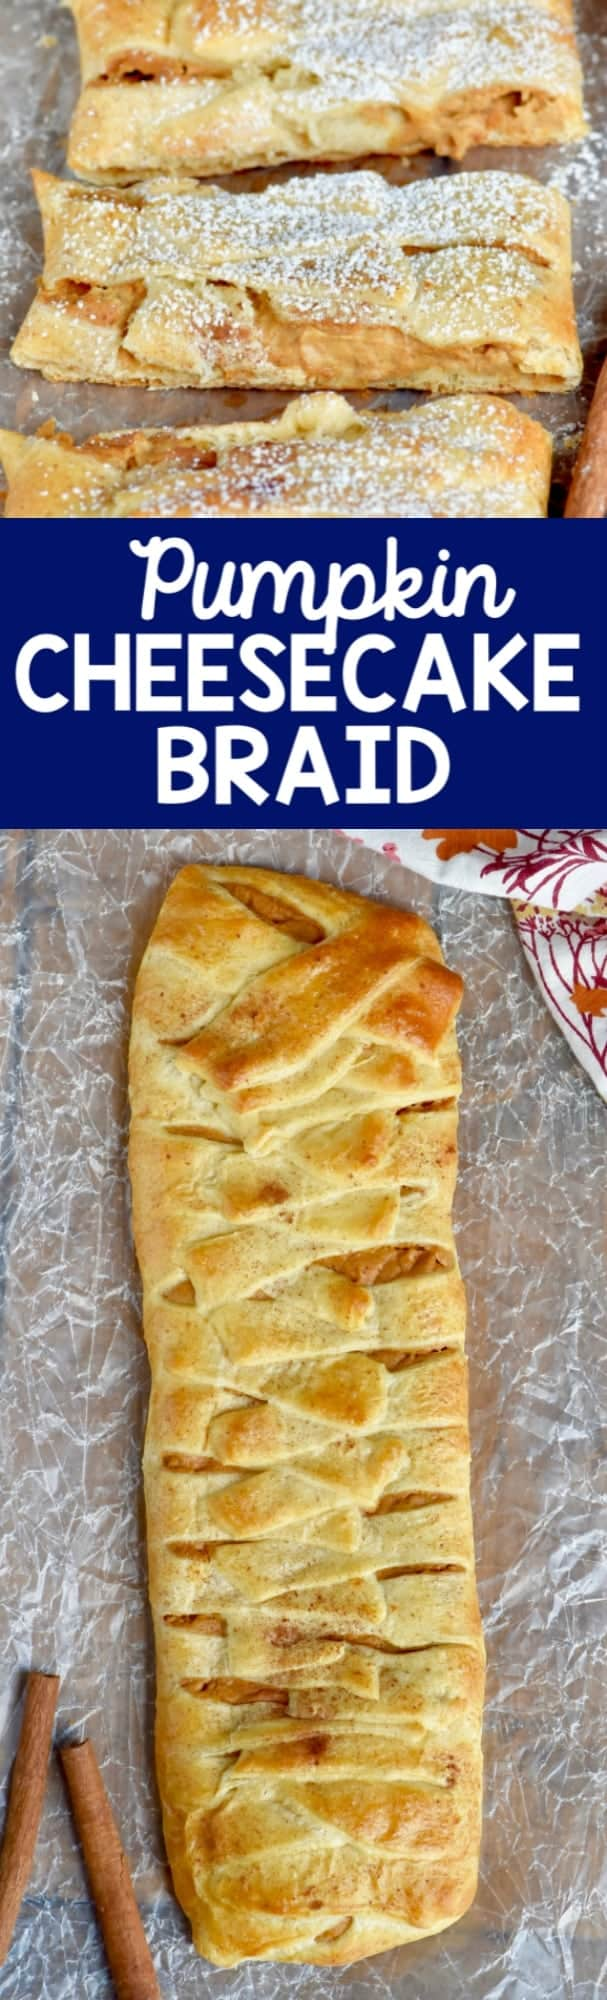 This Pumpkin Cheesecake Braid is easy to throw together but sure to impress, and *totally* delicious!